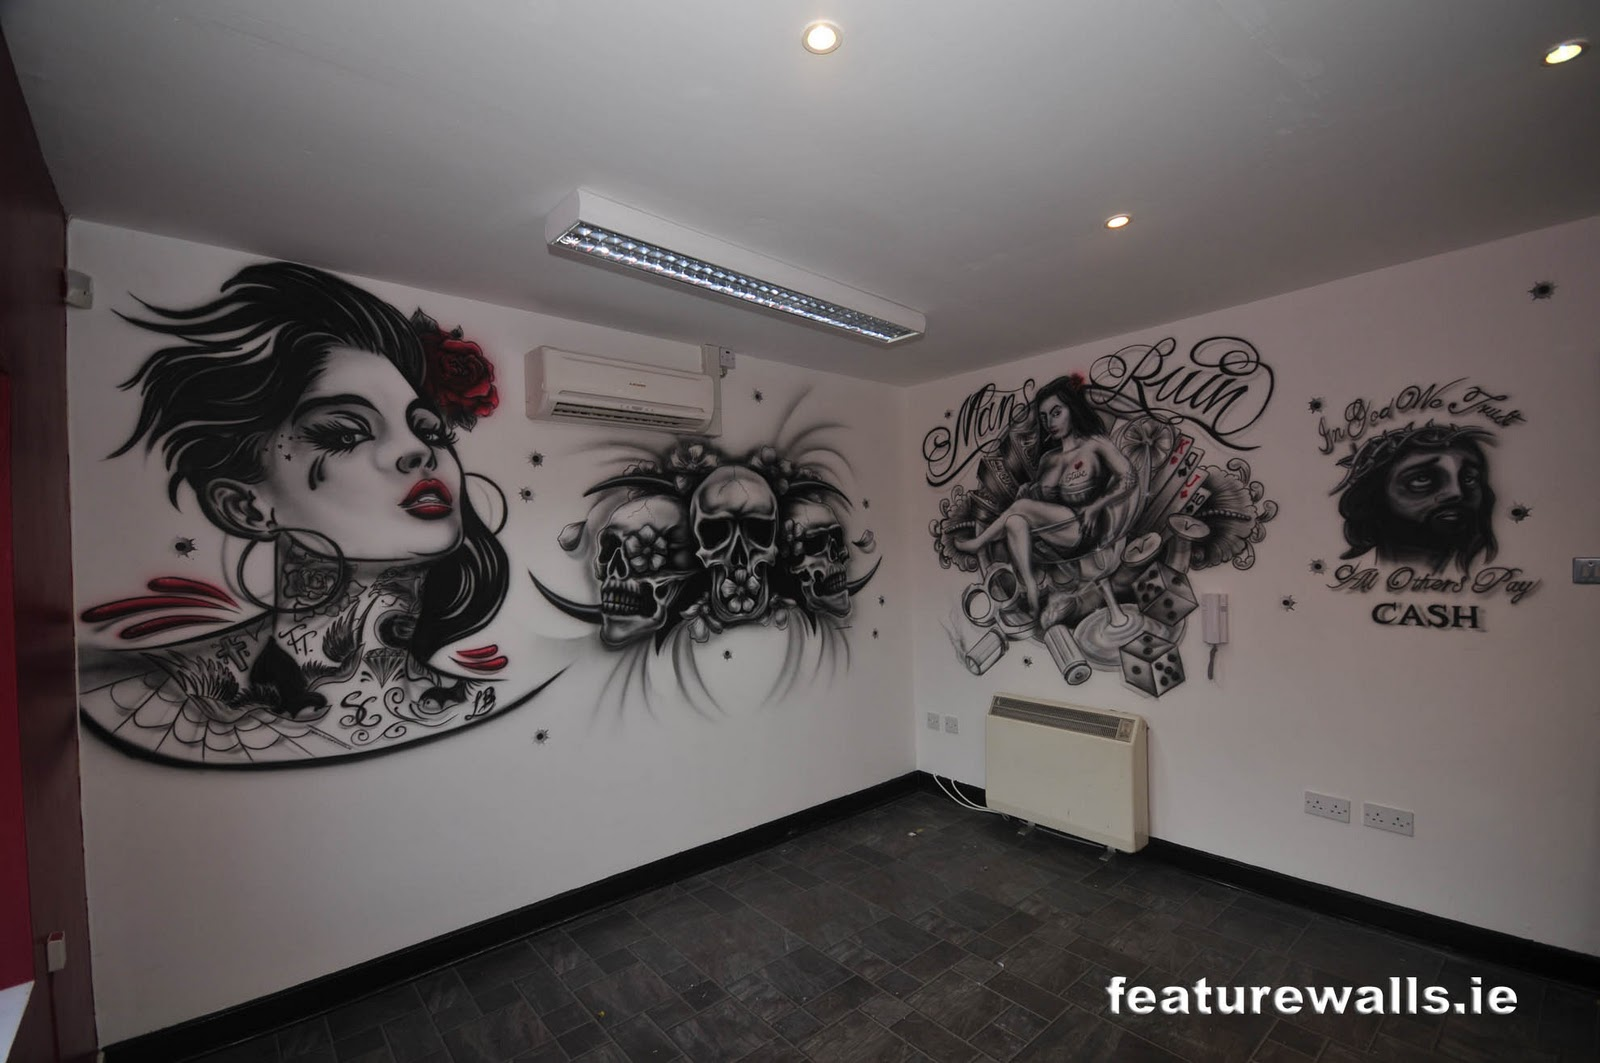 http://3.bp.blogspot.com/-IzRCh6dRbeg/TrZVDqLEeOI/AAAAAAAAB7E/ndgfYI2feRE/s1600/Tattoo%20Parlor%20studio%20murals%20airbrushed%20hand%20painted%20tattoo%20designs%20on%20walls%20by%20featurewalls.ie.jpg